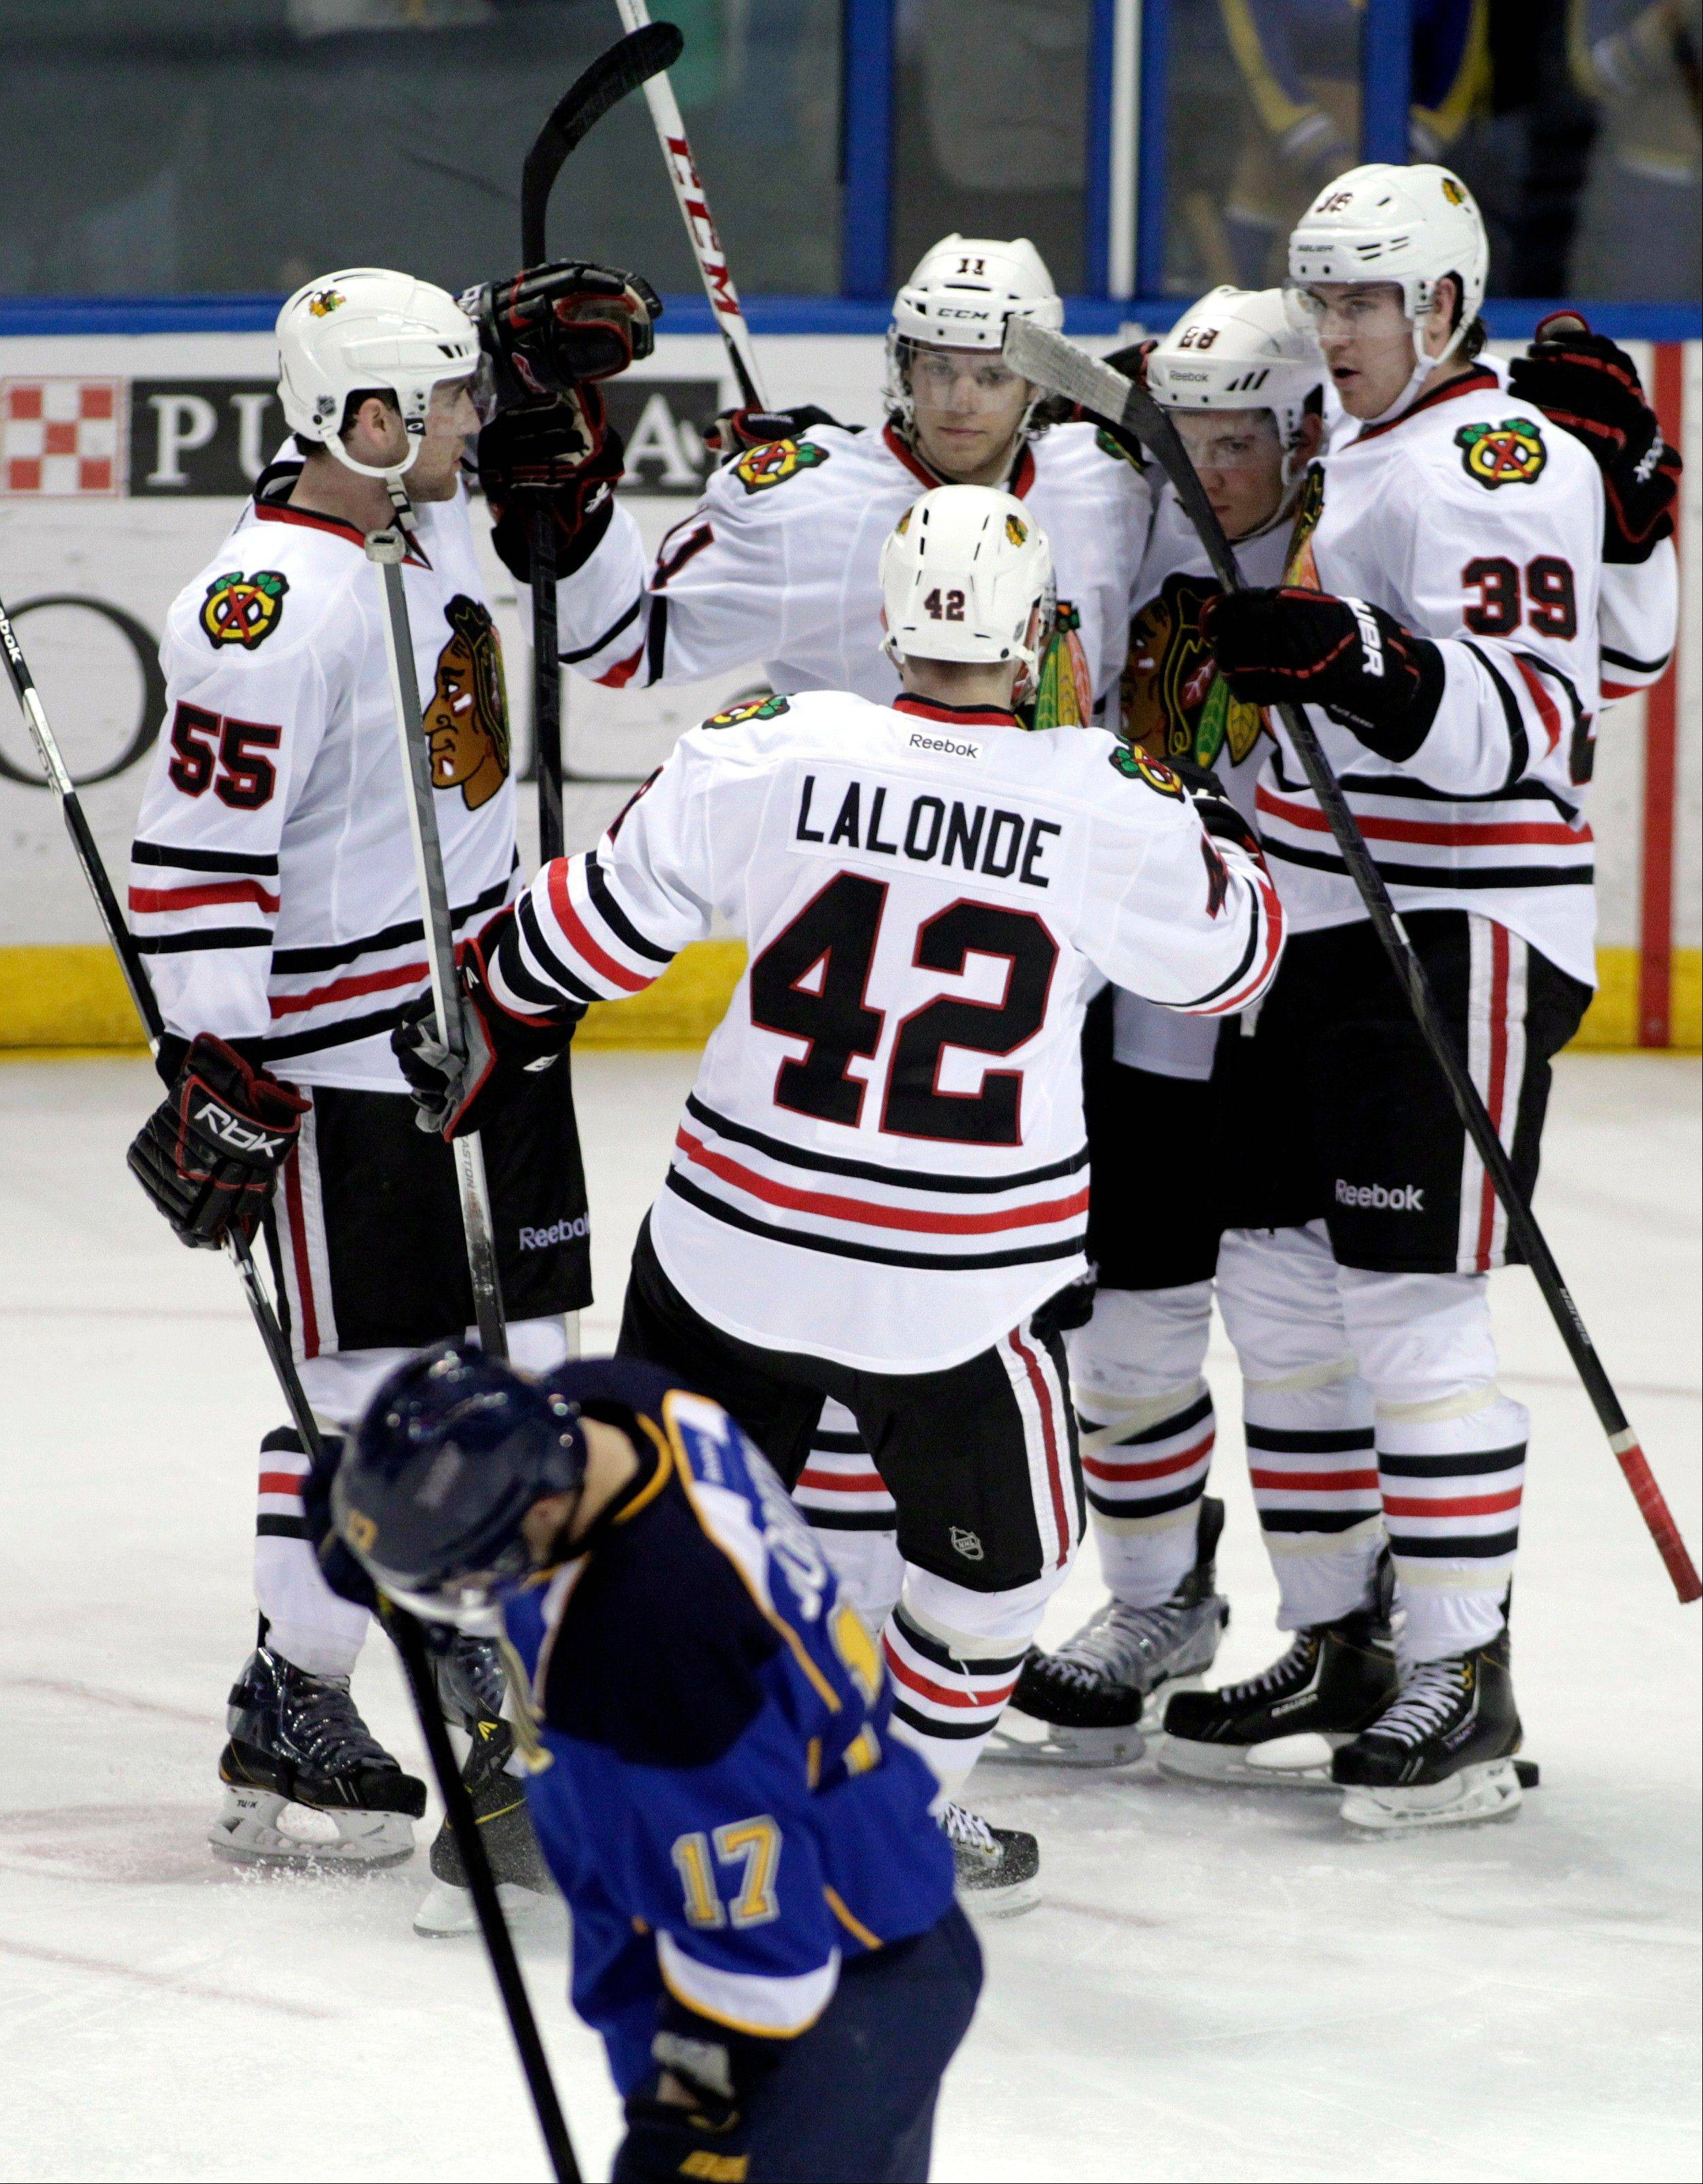 Chicago Blackhawks' Ben Smith (28) is congratulated by teammates Ryan Stanton (55), Shawn Lalaonde (42), Jimmy Hayes (39) and Jeremy Morin (11) after he scored a goal in the third period of an NHL hockey game against the St. Louis Blues, Saturday, April 27, 2013 in St. Louis. The Blues beat the Blackhawks 3-1.